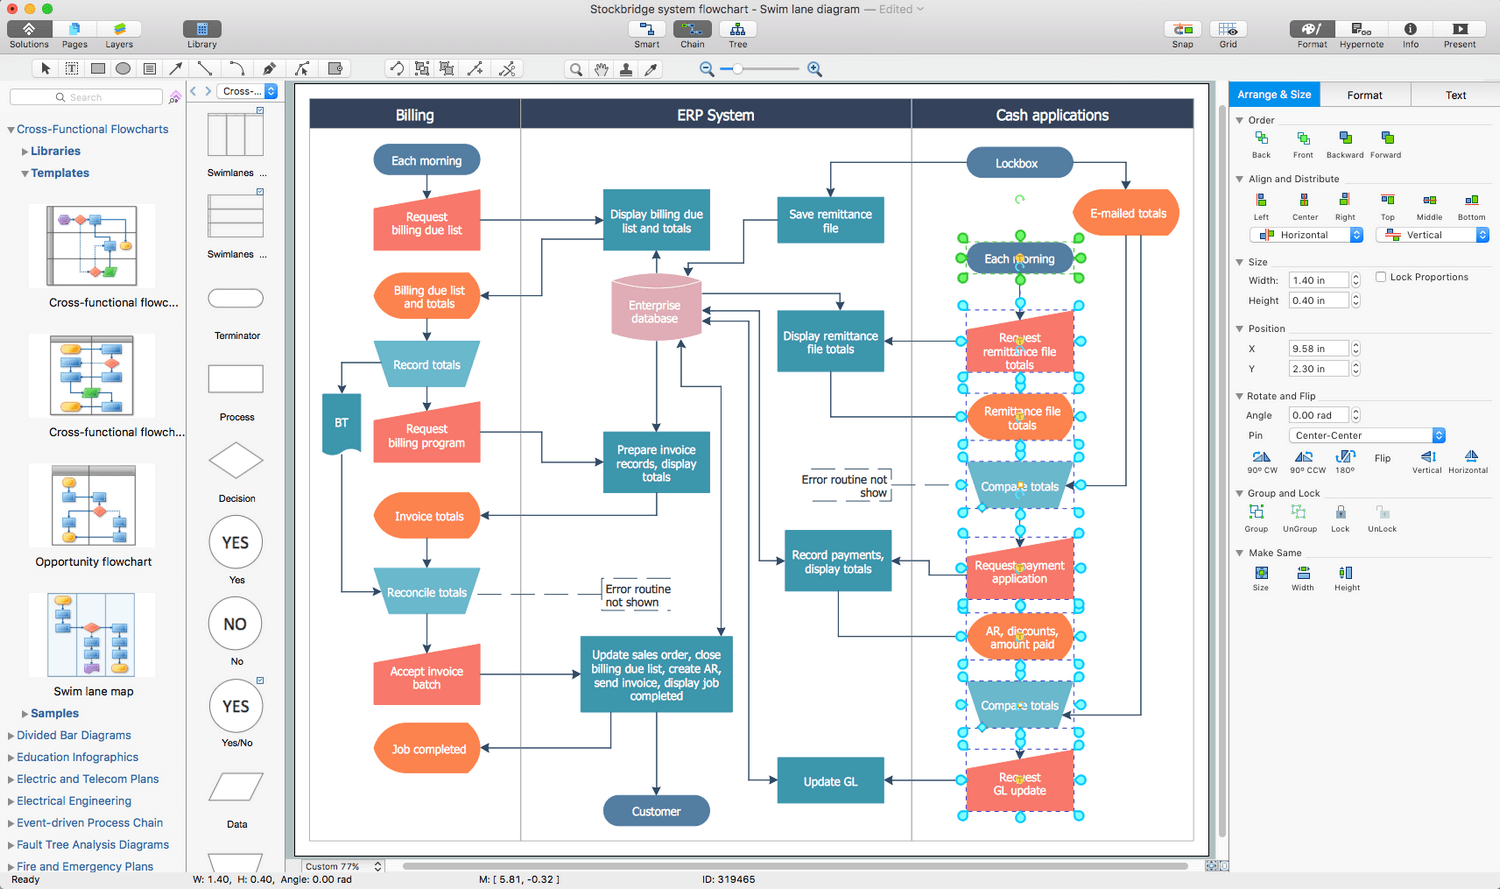 visio cloud diagram 1991 gmc jimmy radio wiring cross-functional flowcharts solution | conceptdraw.com